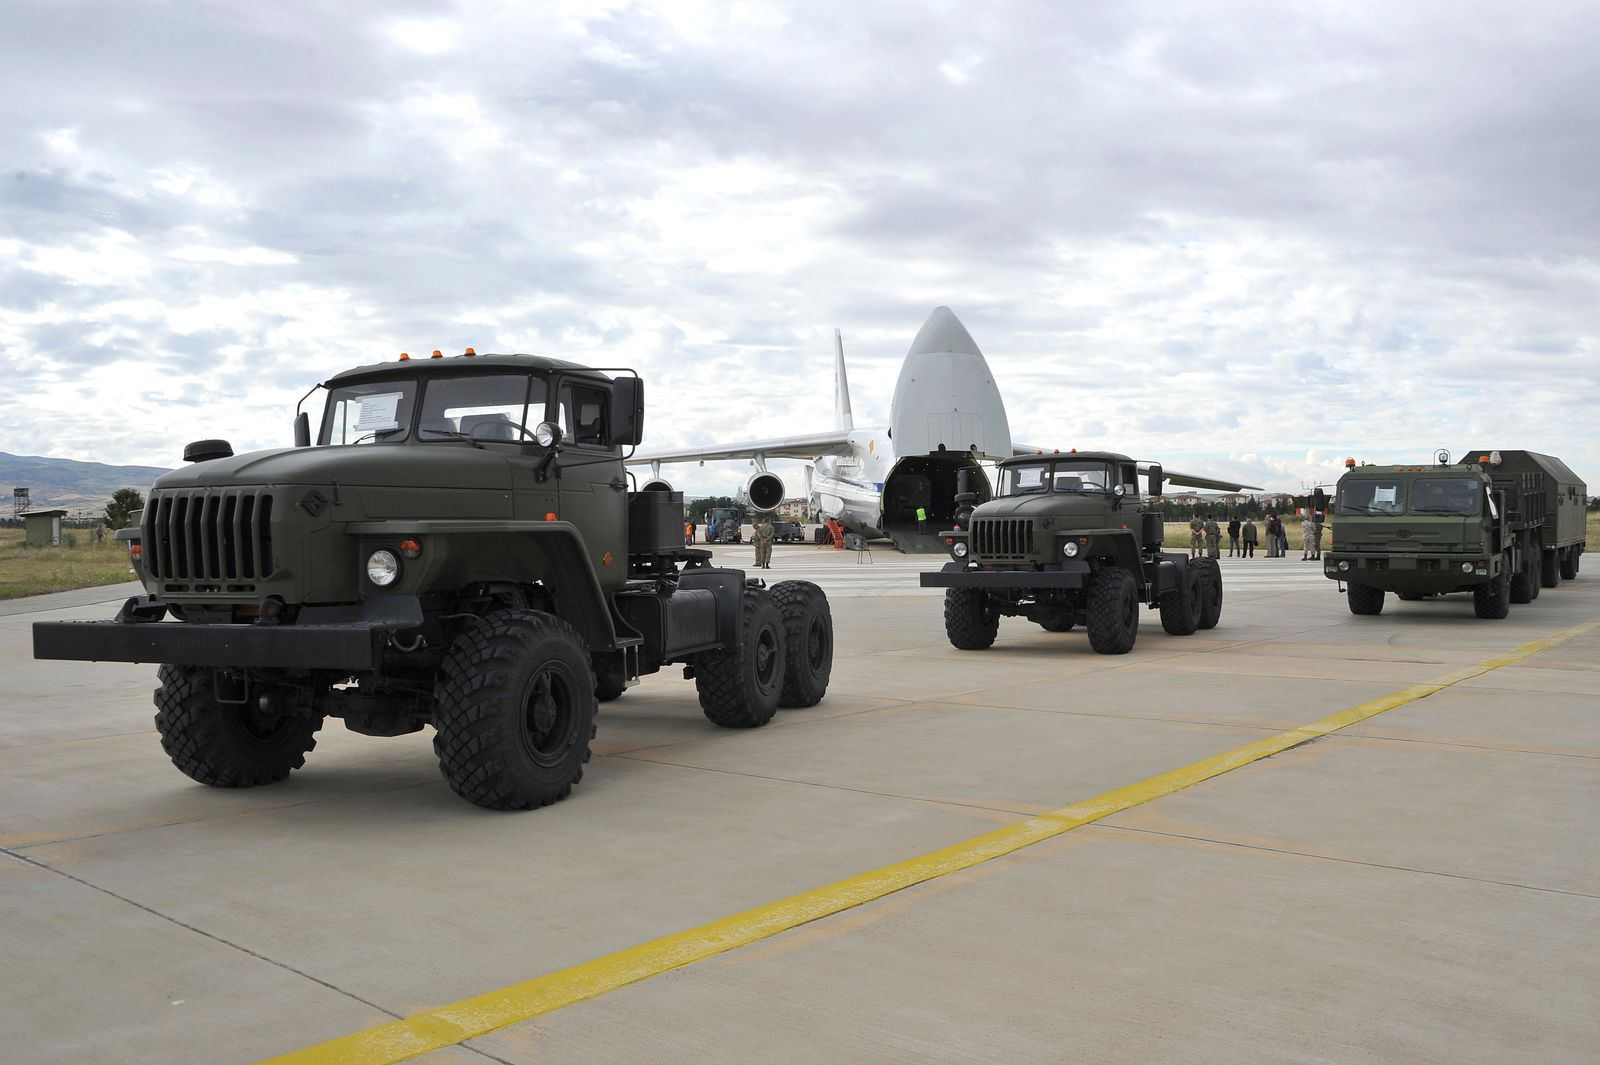 Military vehicles and equipment, parts of the S-400 air defense systems, are seen on the tarmac, after they were unloaded from a Russian transport aircraft, at Murted military airport in Ankara, Turkey, Friday, July 12, 2019. (Turkish Defence Ministry via AP, Pool)